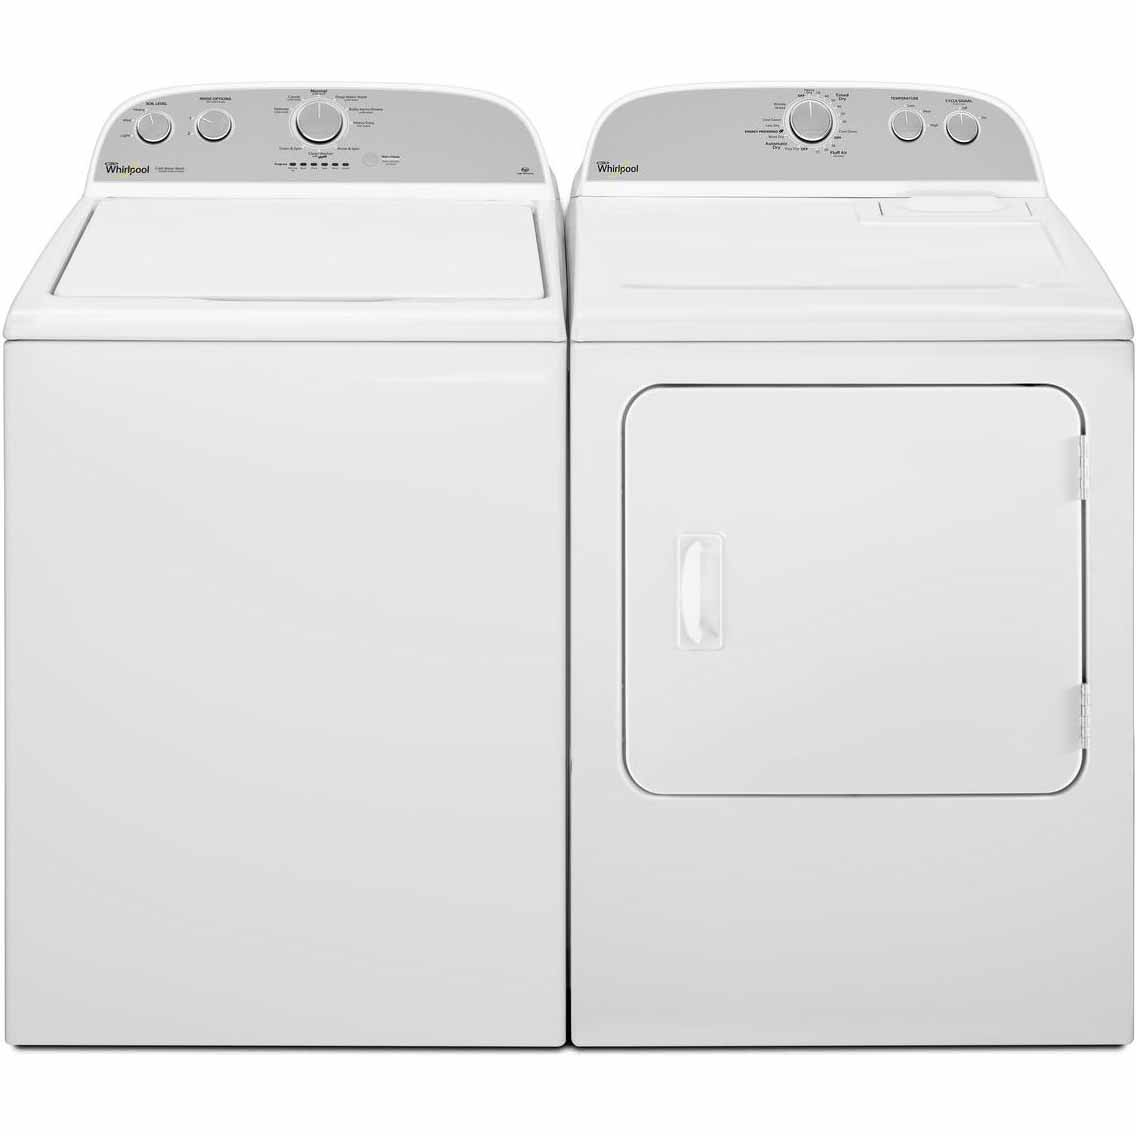 Whirlpool WTW4715EW 3.5 cu. ft. Top Load Washer - White (Select California Markets*)